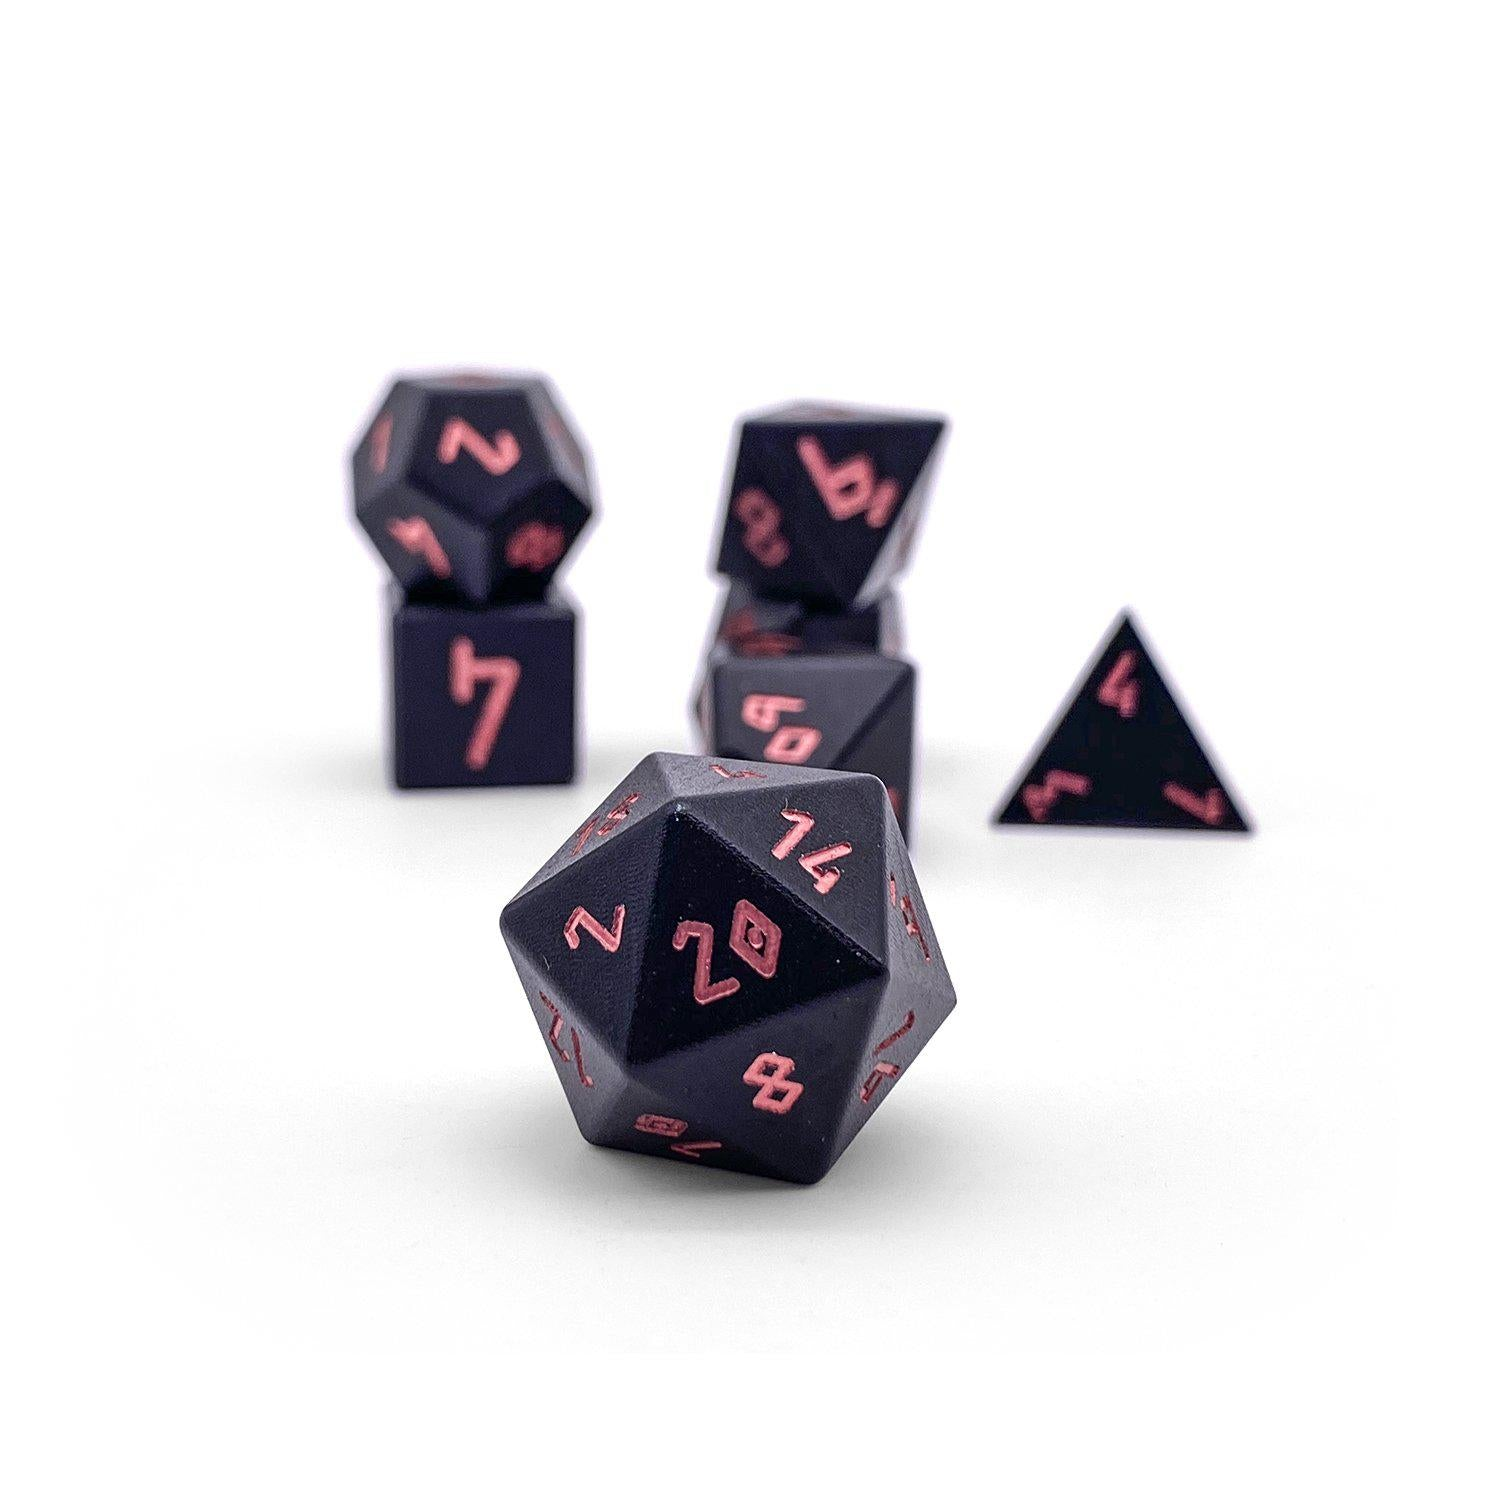 Orb Series - Orb of Fire - Set of 7 RPG Dice by Norse Foundry Precision Polyhedral Dice Set